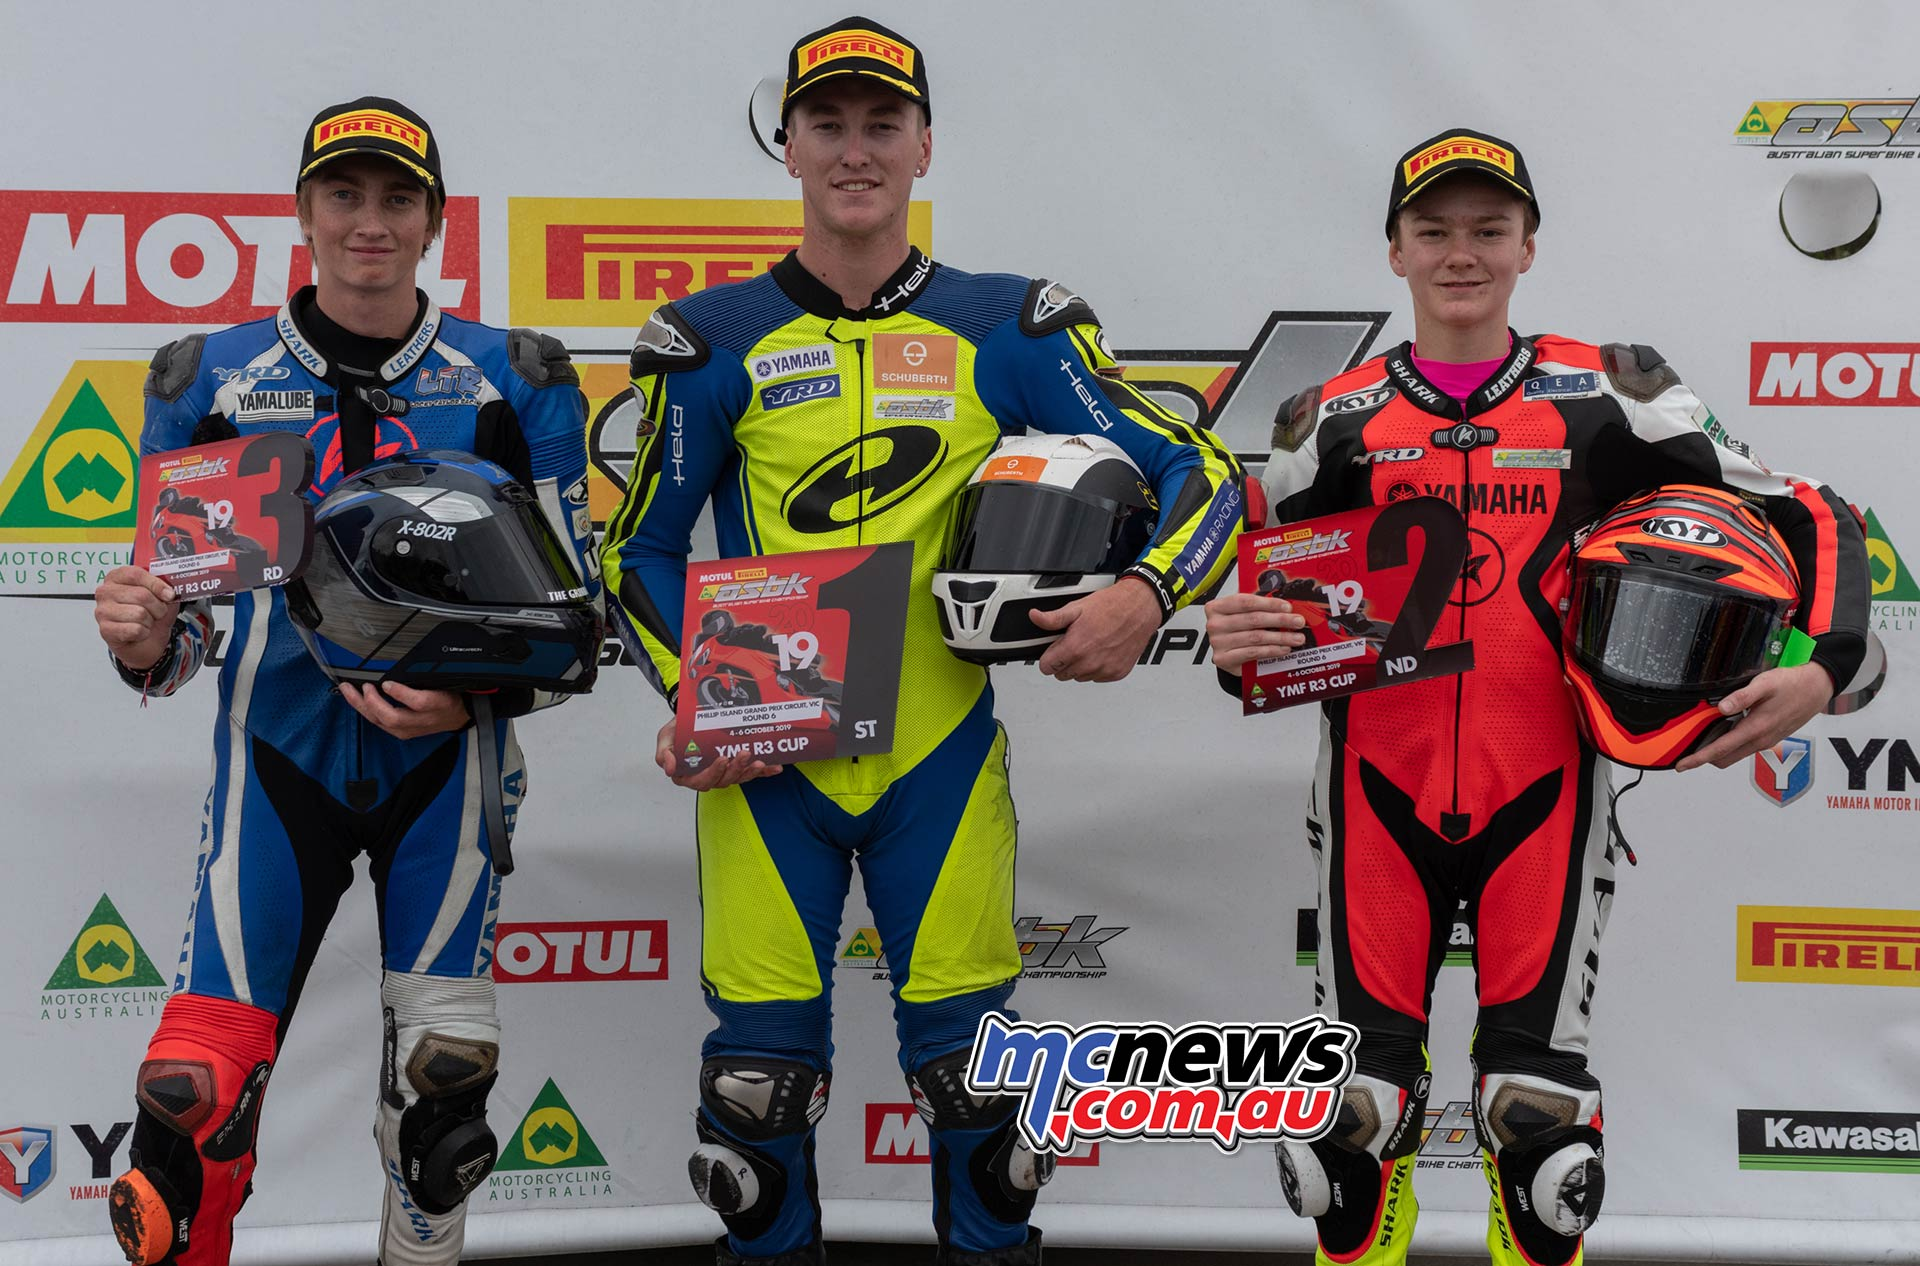 ASBK Rnd Phillip Island RbMotoLens R Cup R Parc Ferme Round Winners Locy Taylor Hunter Ford Max Stauffer Sunday